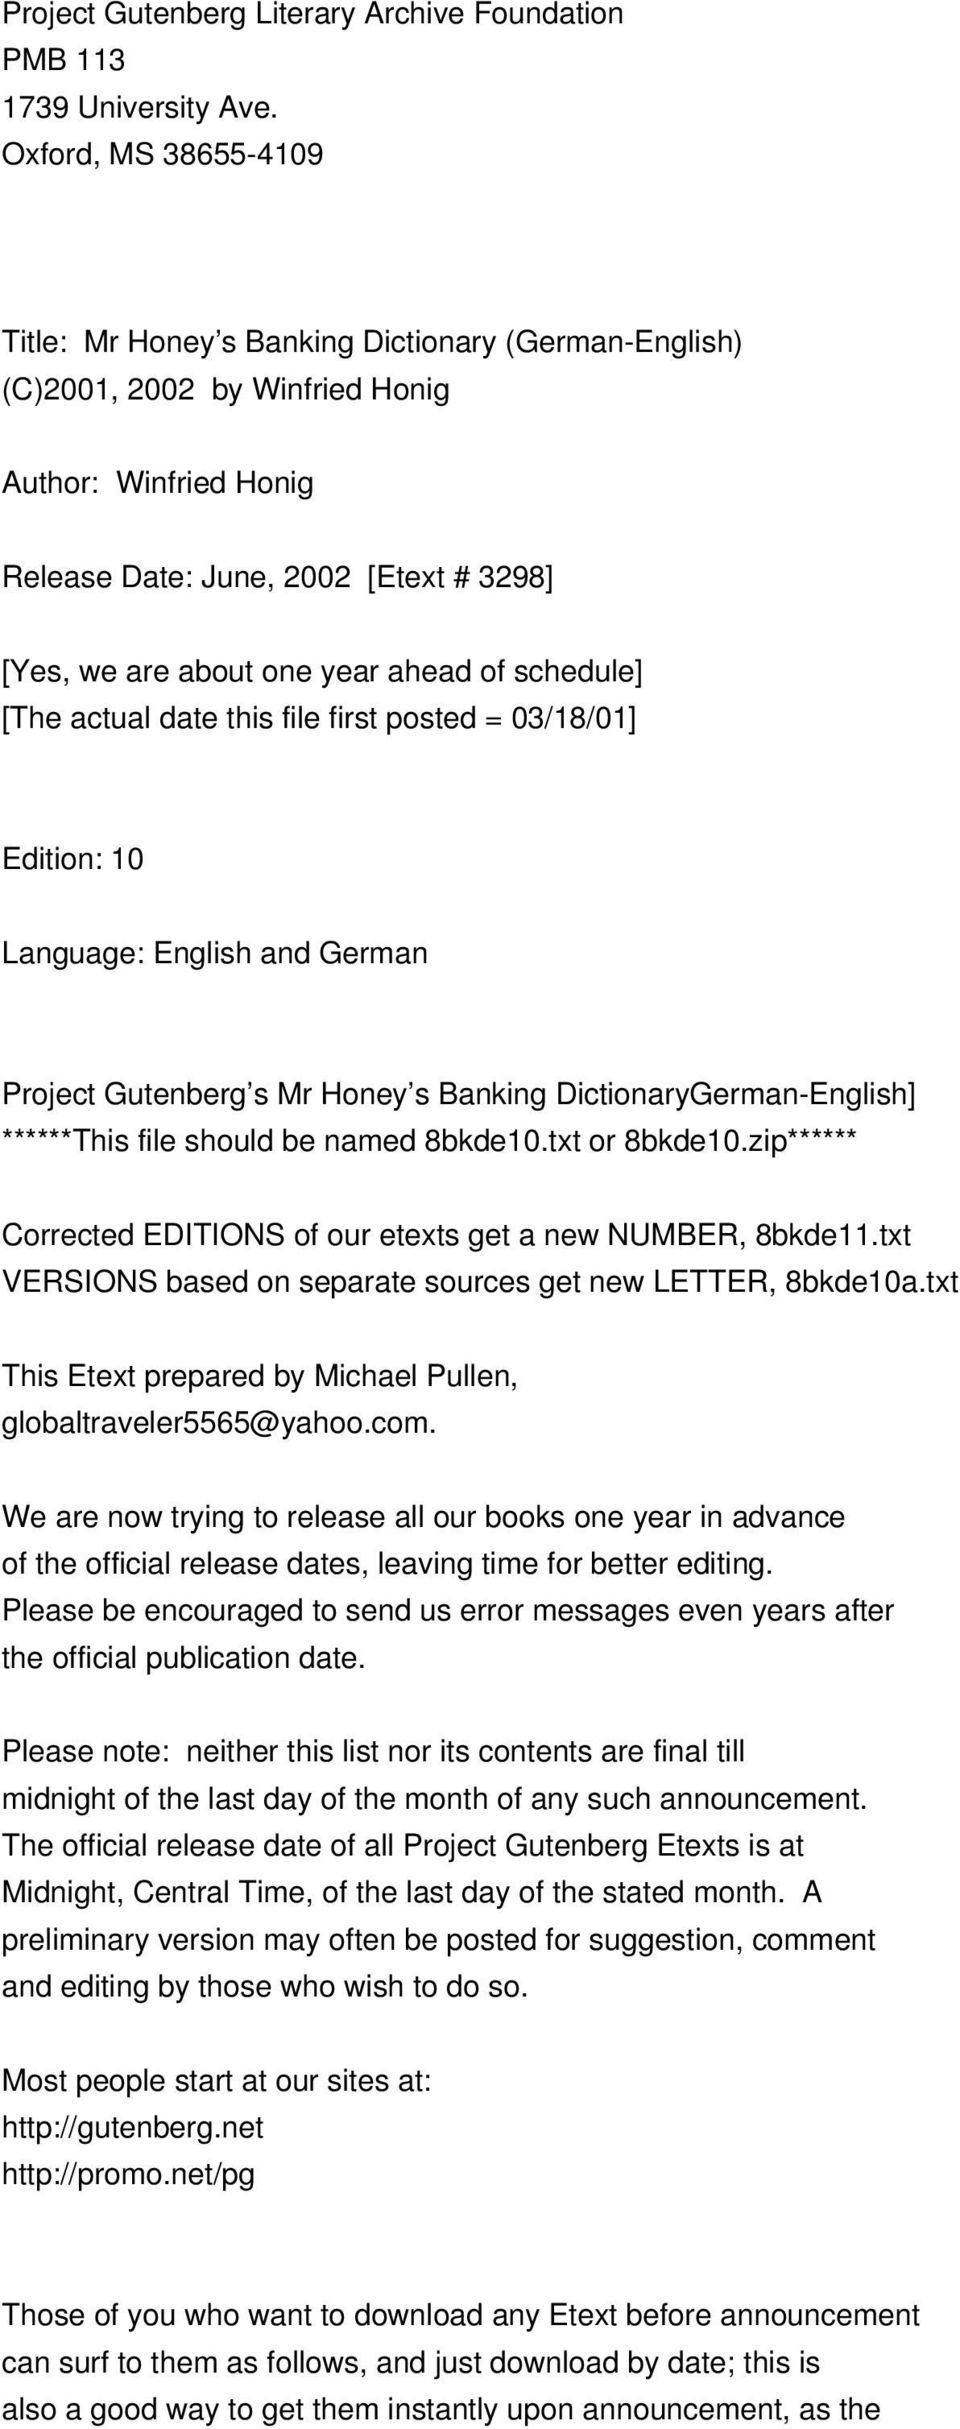 ahead of schedule] [The actual date this file first posted = 03/18/01] Edition: 10 Language: English and German Project Gutenberg s Mr Honey s Banking DictionaryGerman-English] ******This file should